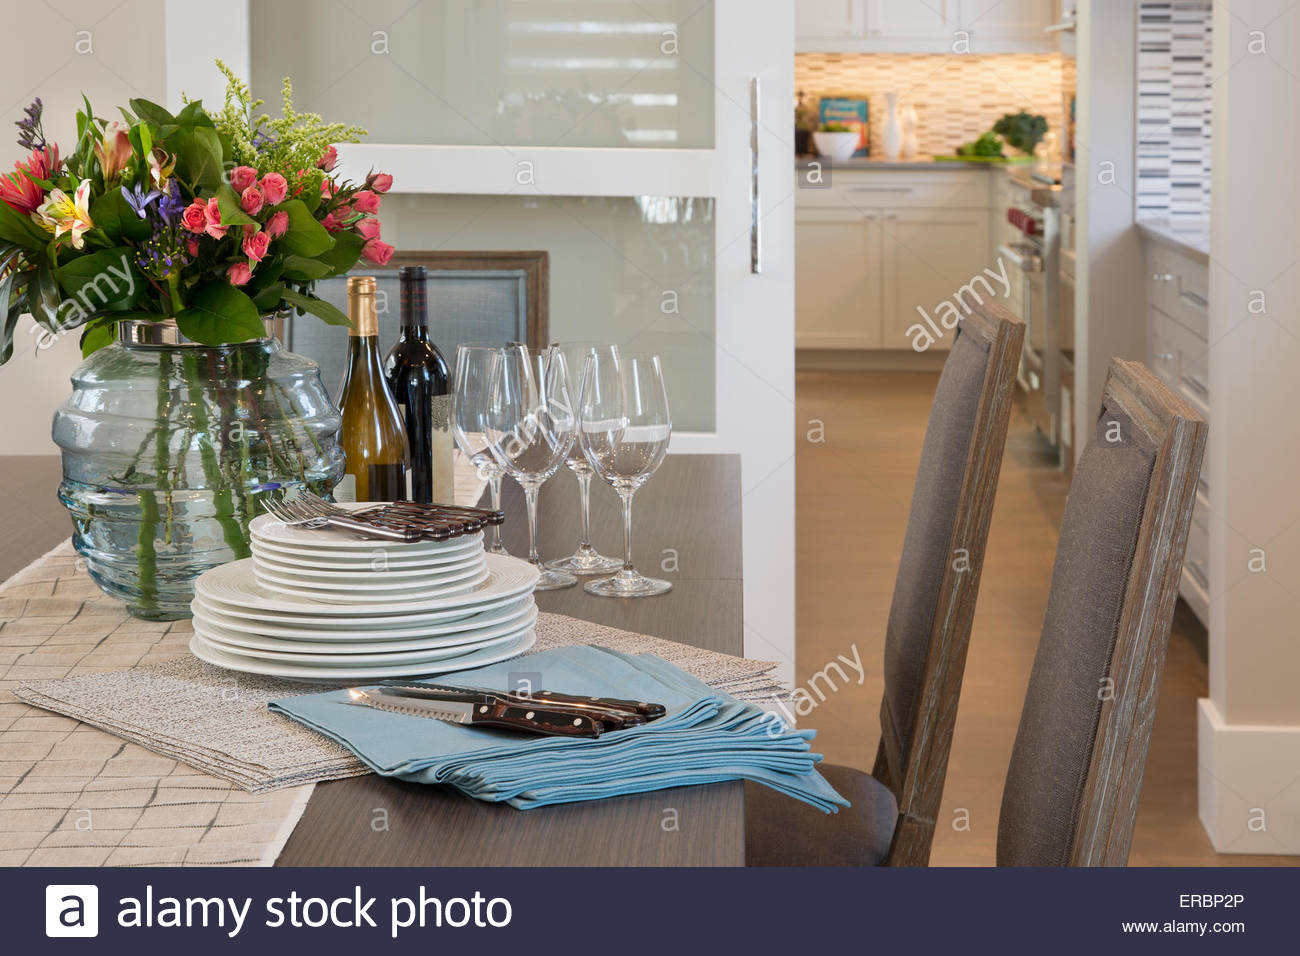 Flower bouquet and stacked place settings dining table - Stock Image